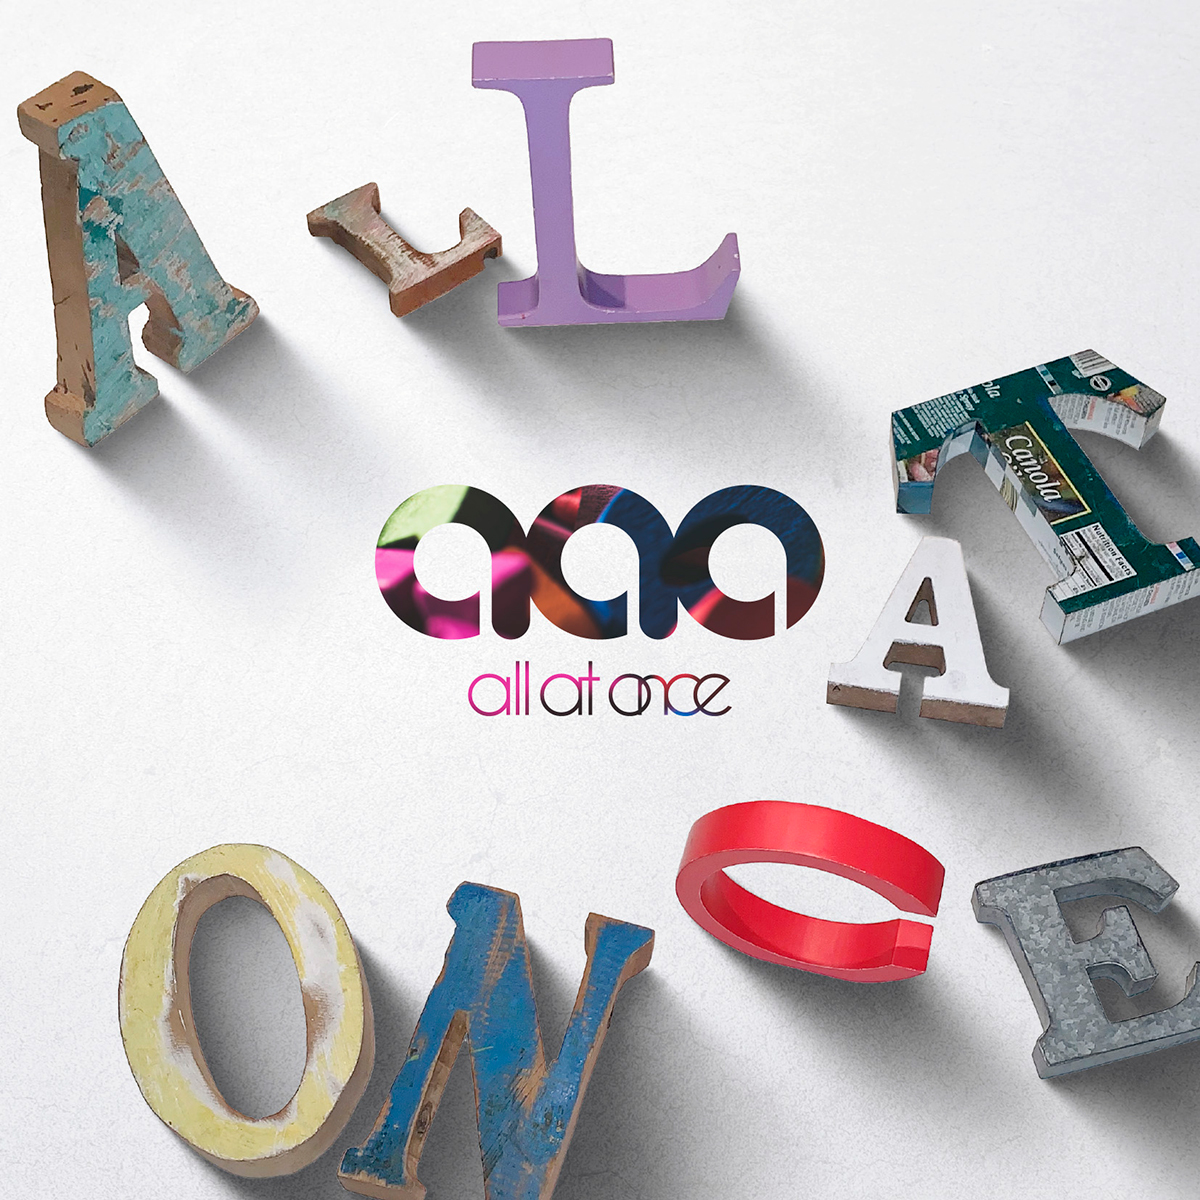 all at once 1st Album「ALL AT ONCE」初回限定盤